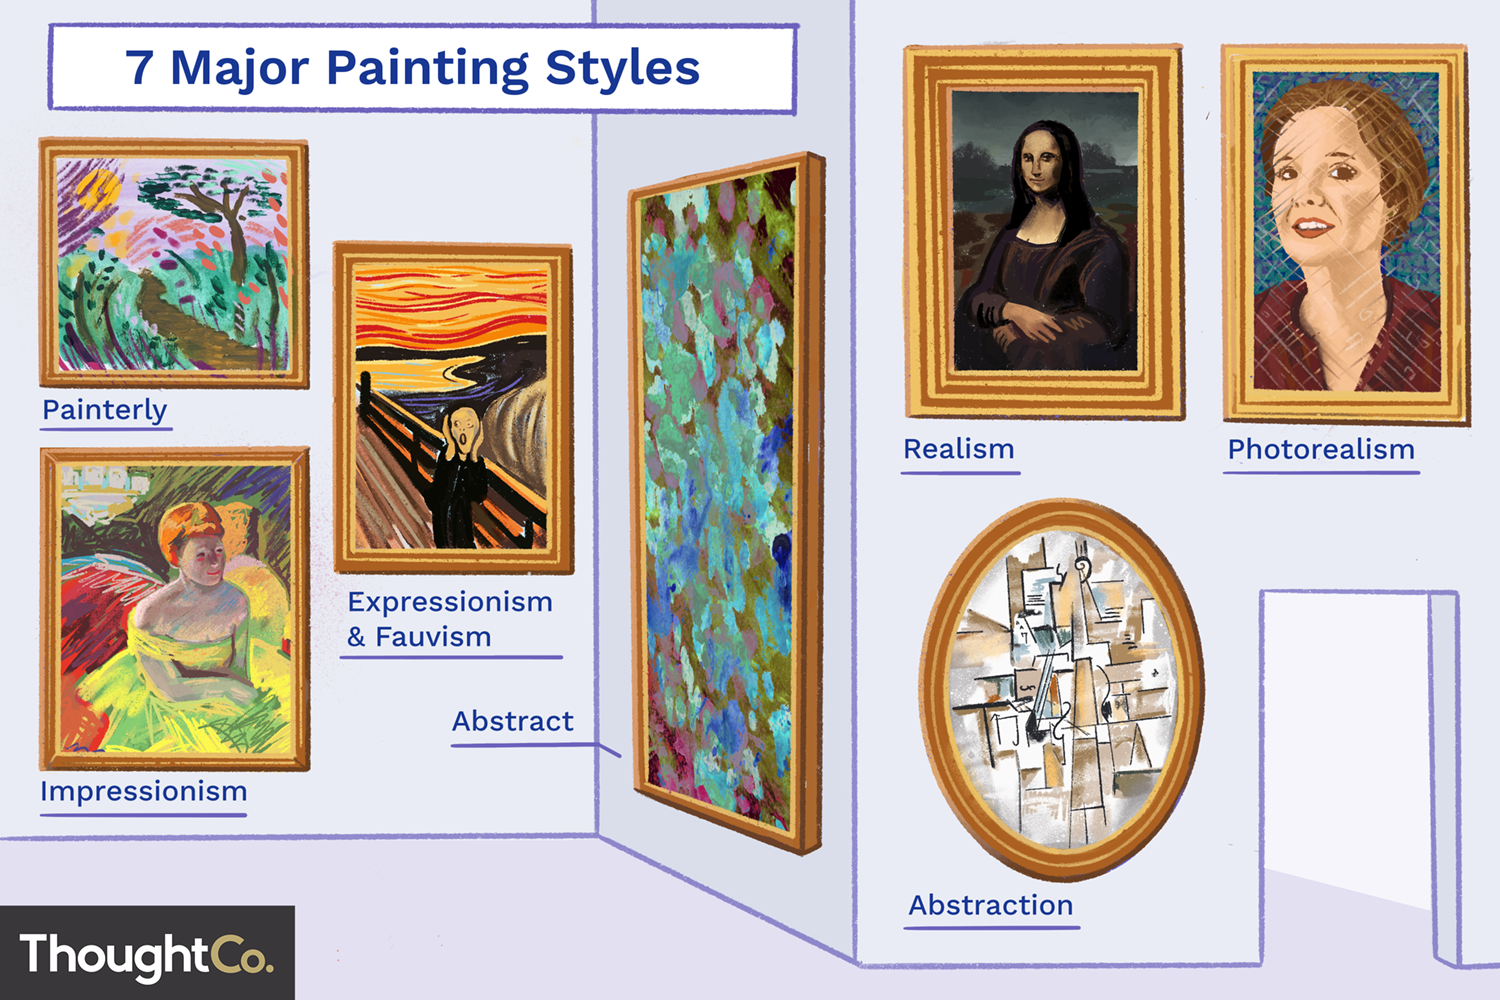 7 Major Painting Styles, From Realism to Abstract